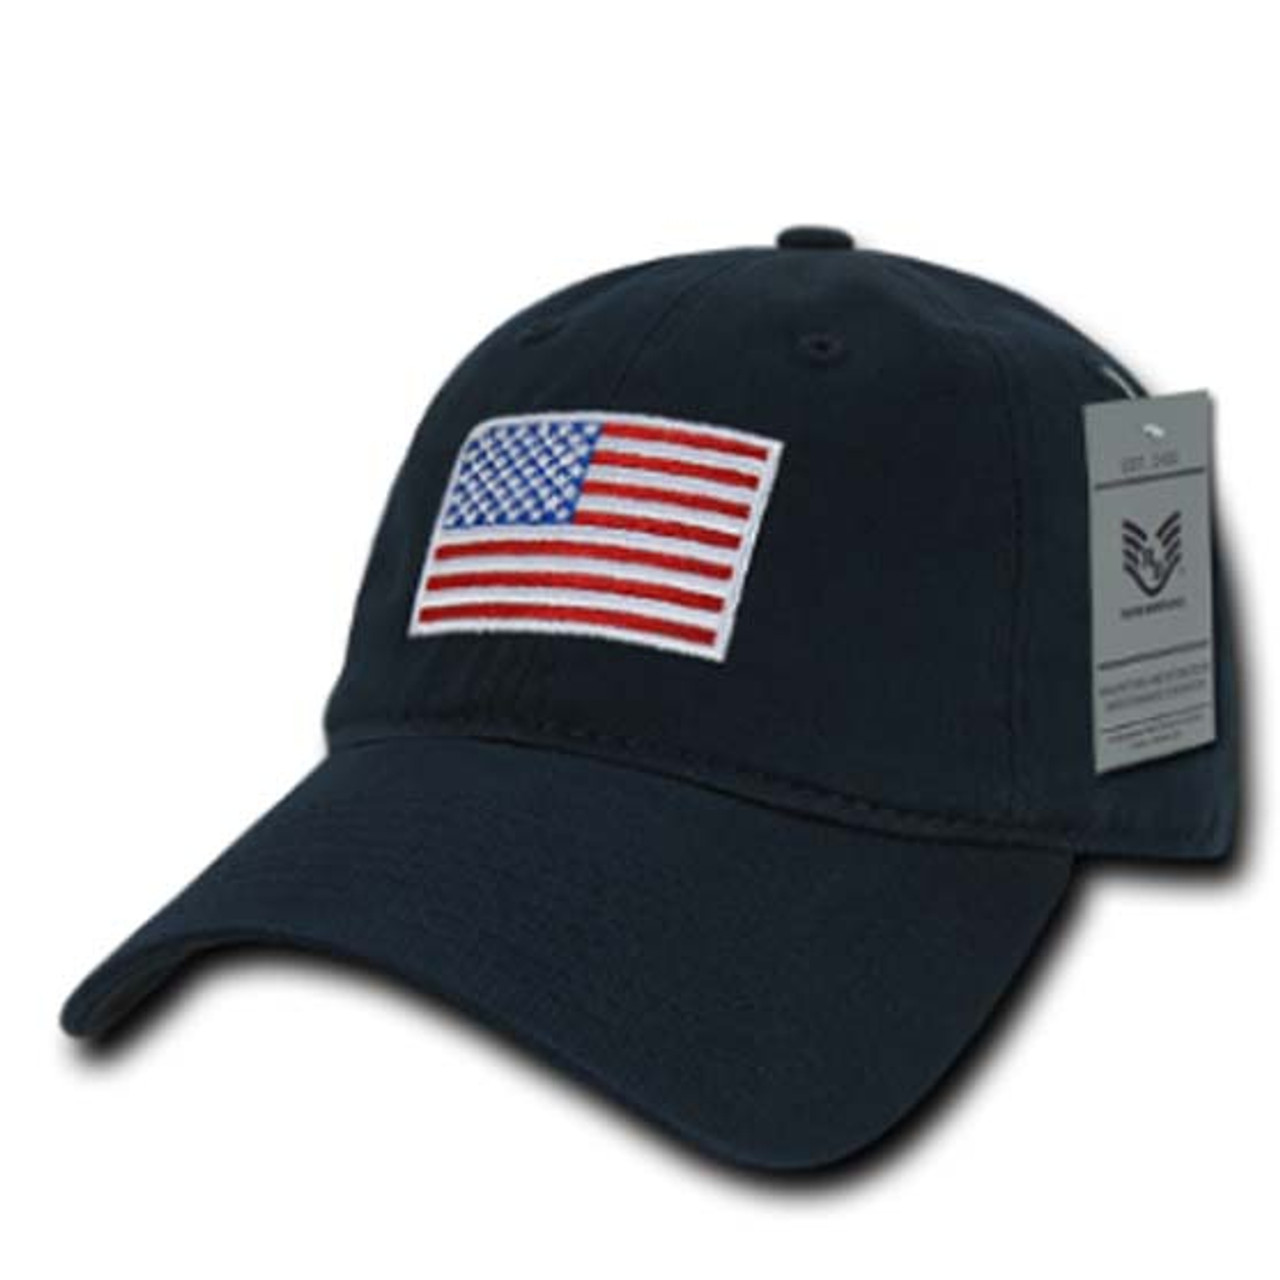 Navy Red White   Blue US American Flag United States America Polo Tonal  Baseball Hat Cap fd7d9037d0b